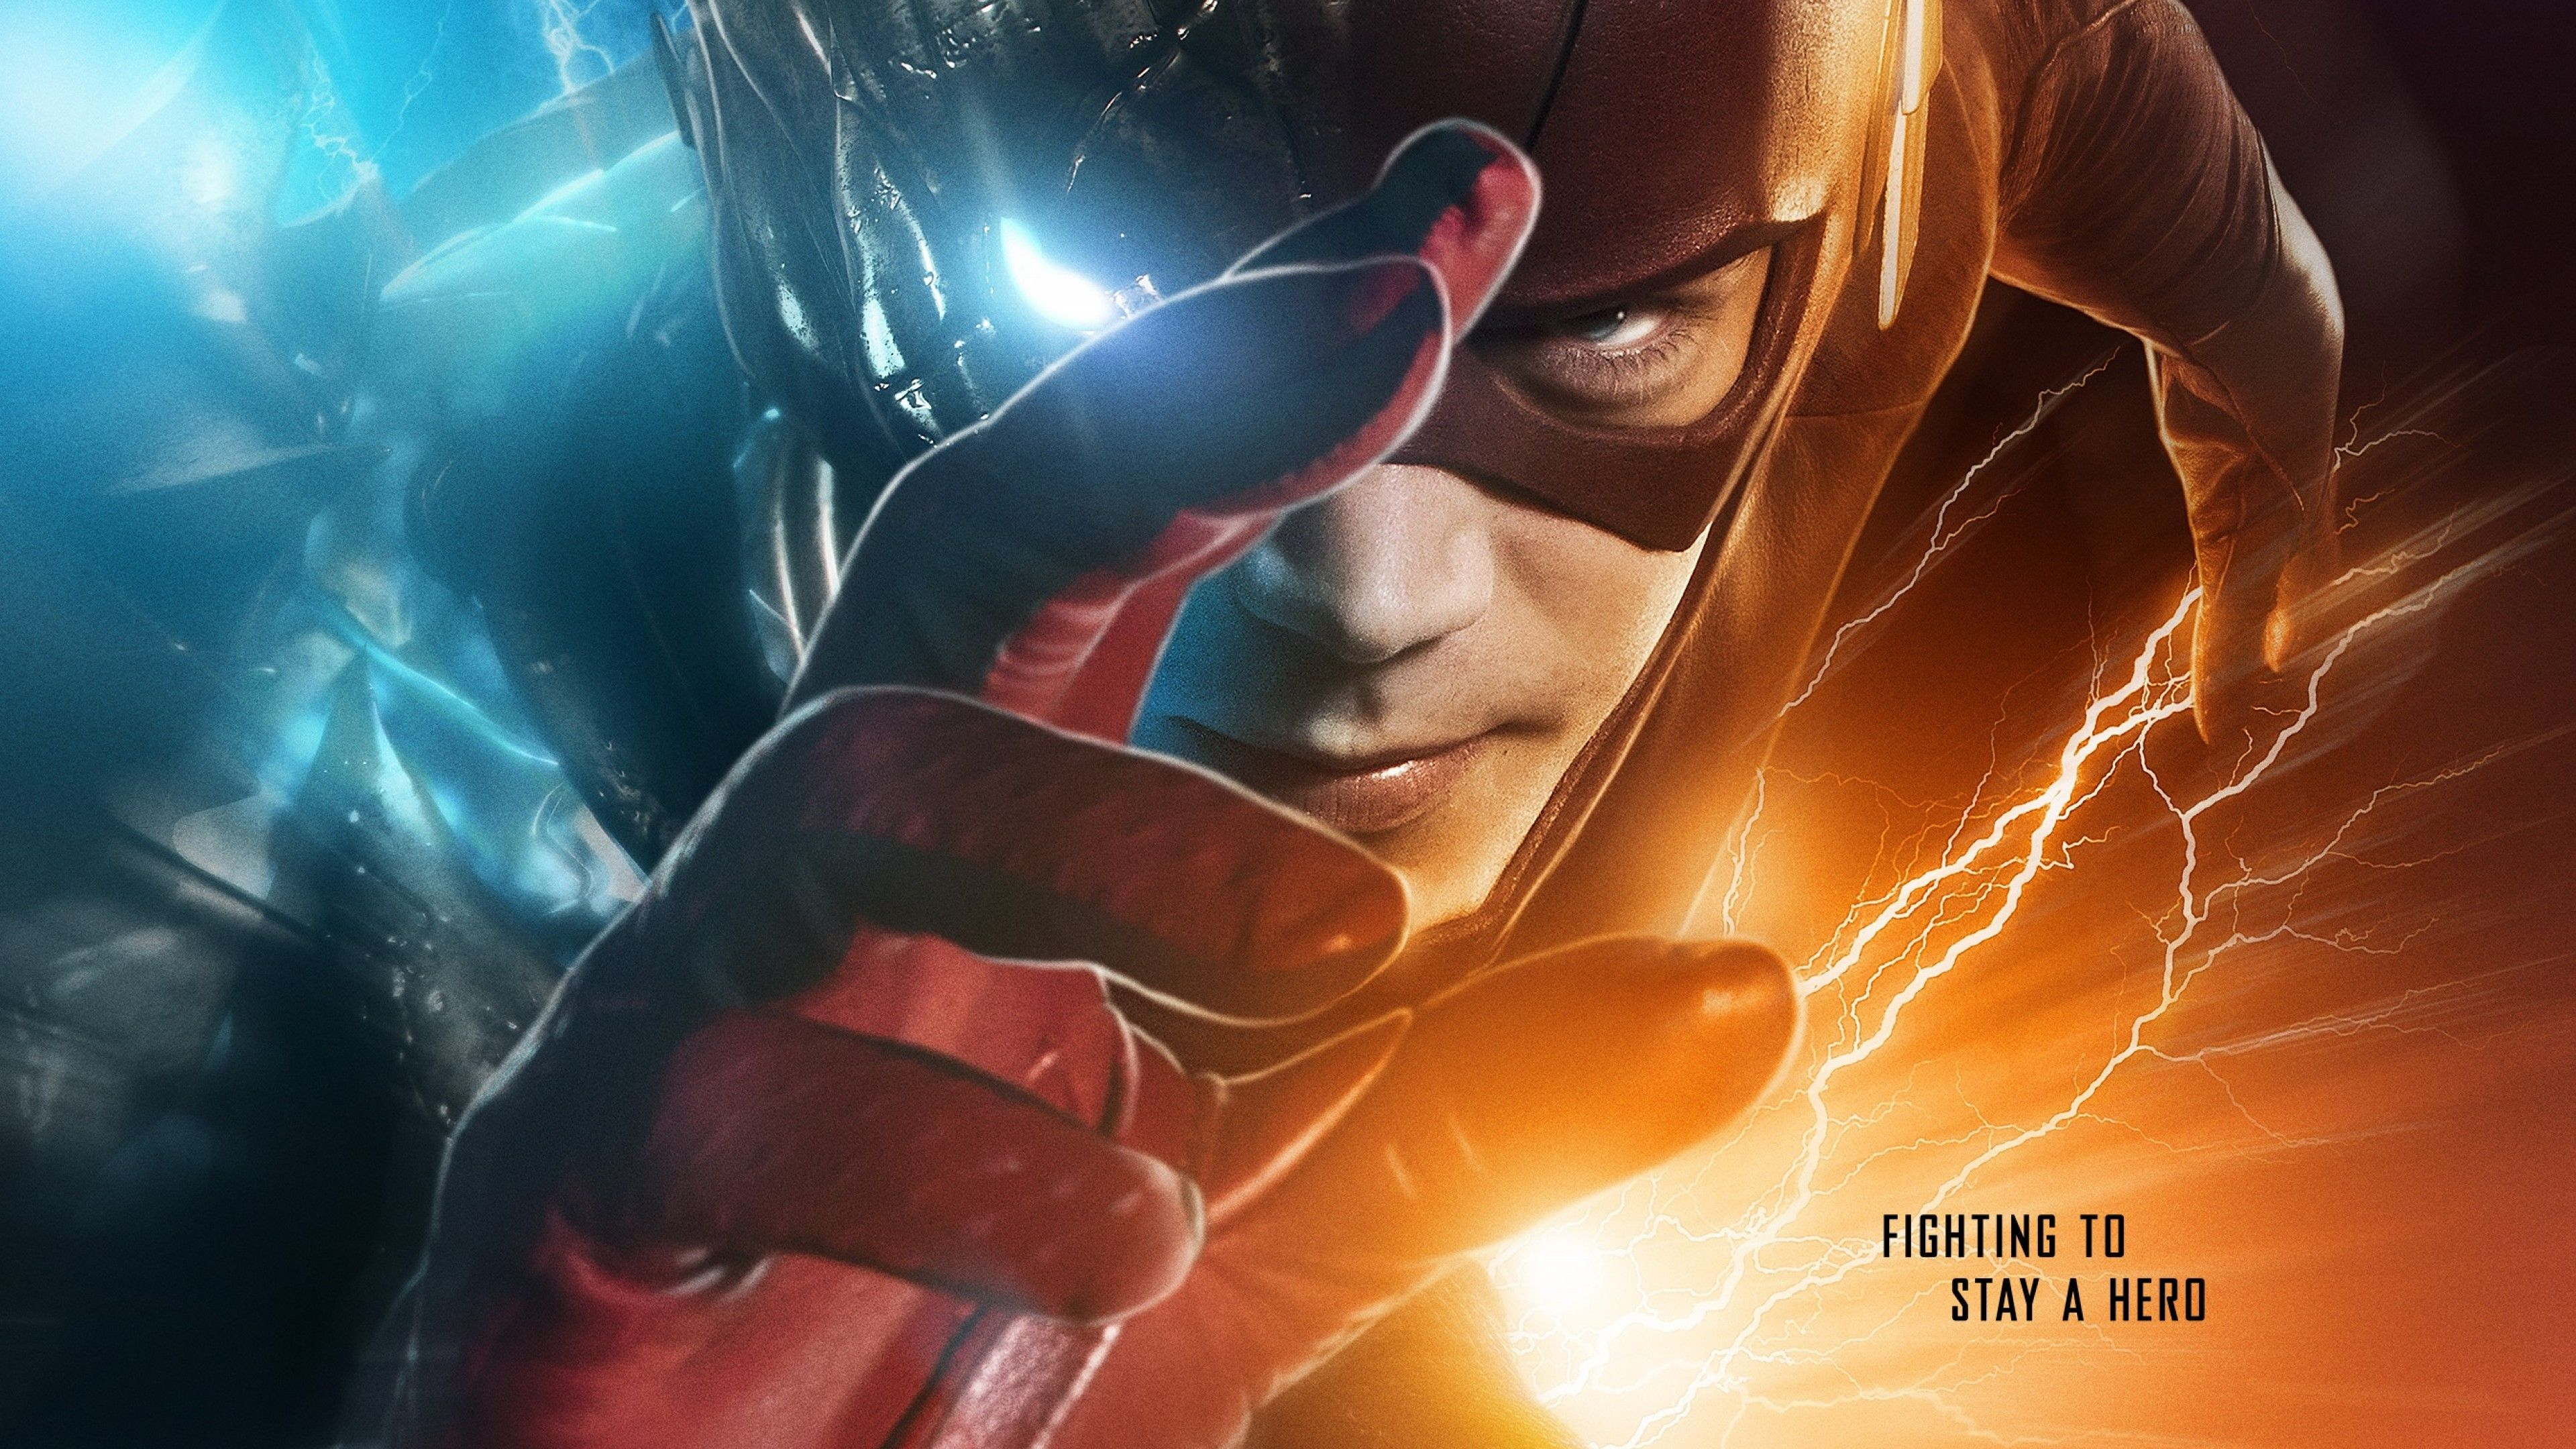 The Flash Cool Wallpapers - Top Free ...